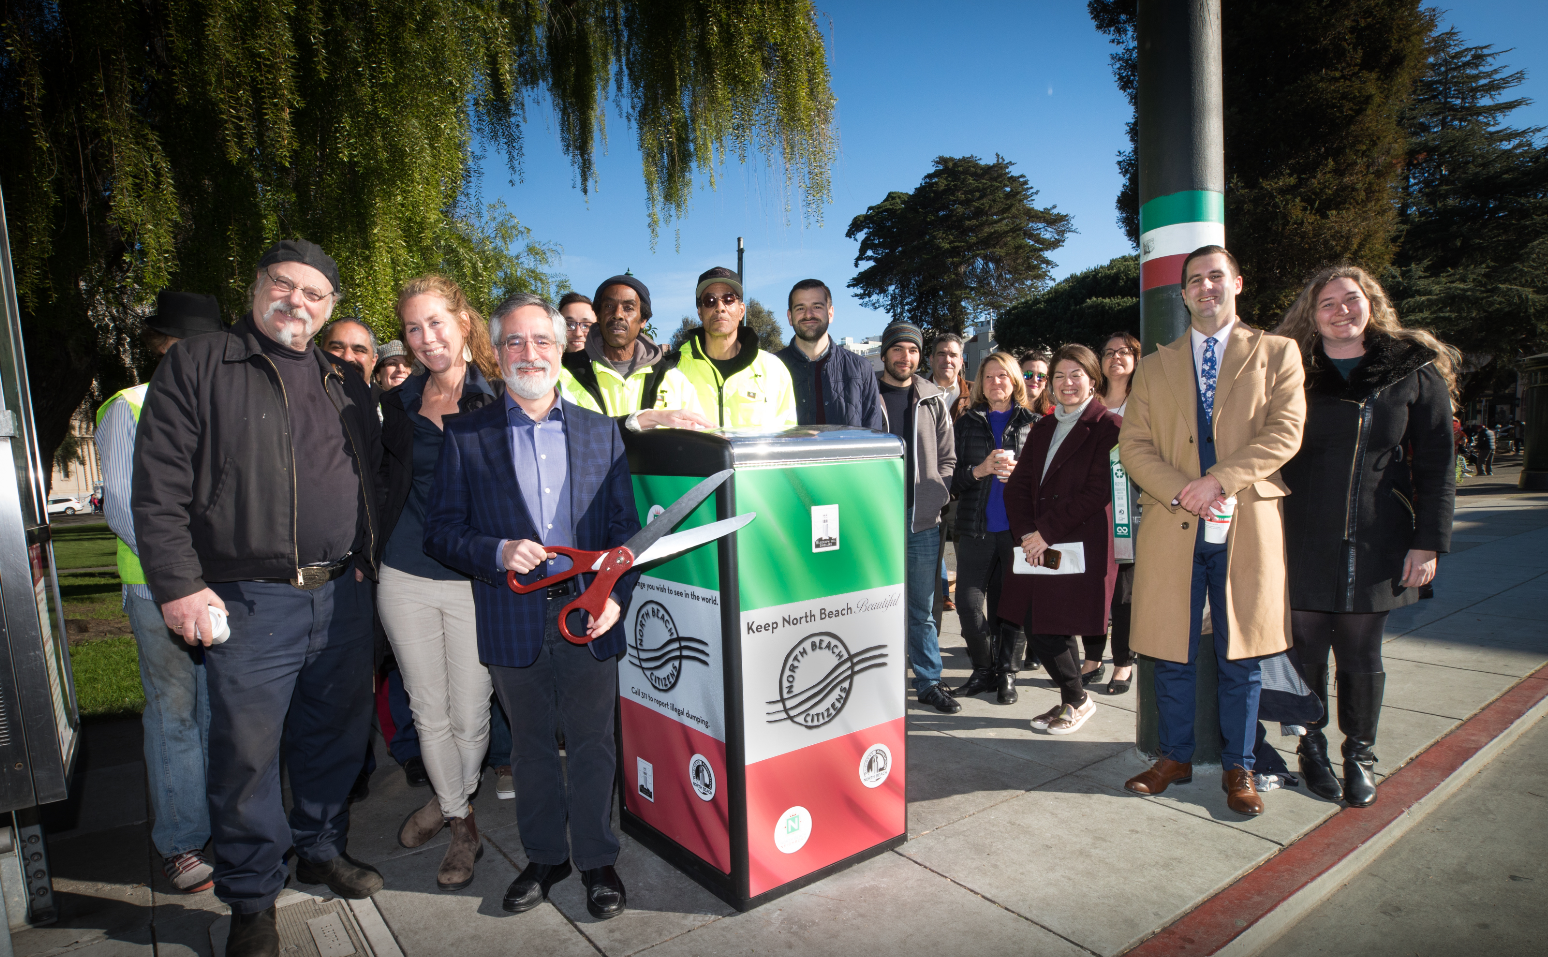 Bigbelly launch event on February 22, 2019 in Washington Square Park with Supervisor Peskin, NBC Executive Director, Kristie Fairchild, and community partners